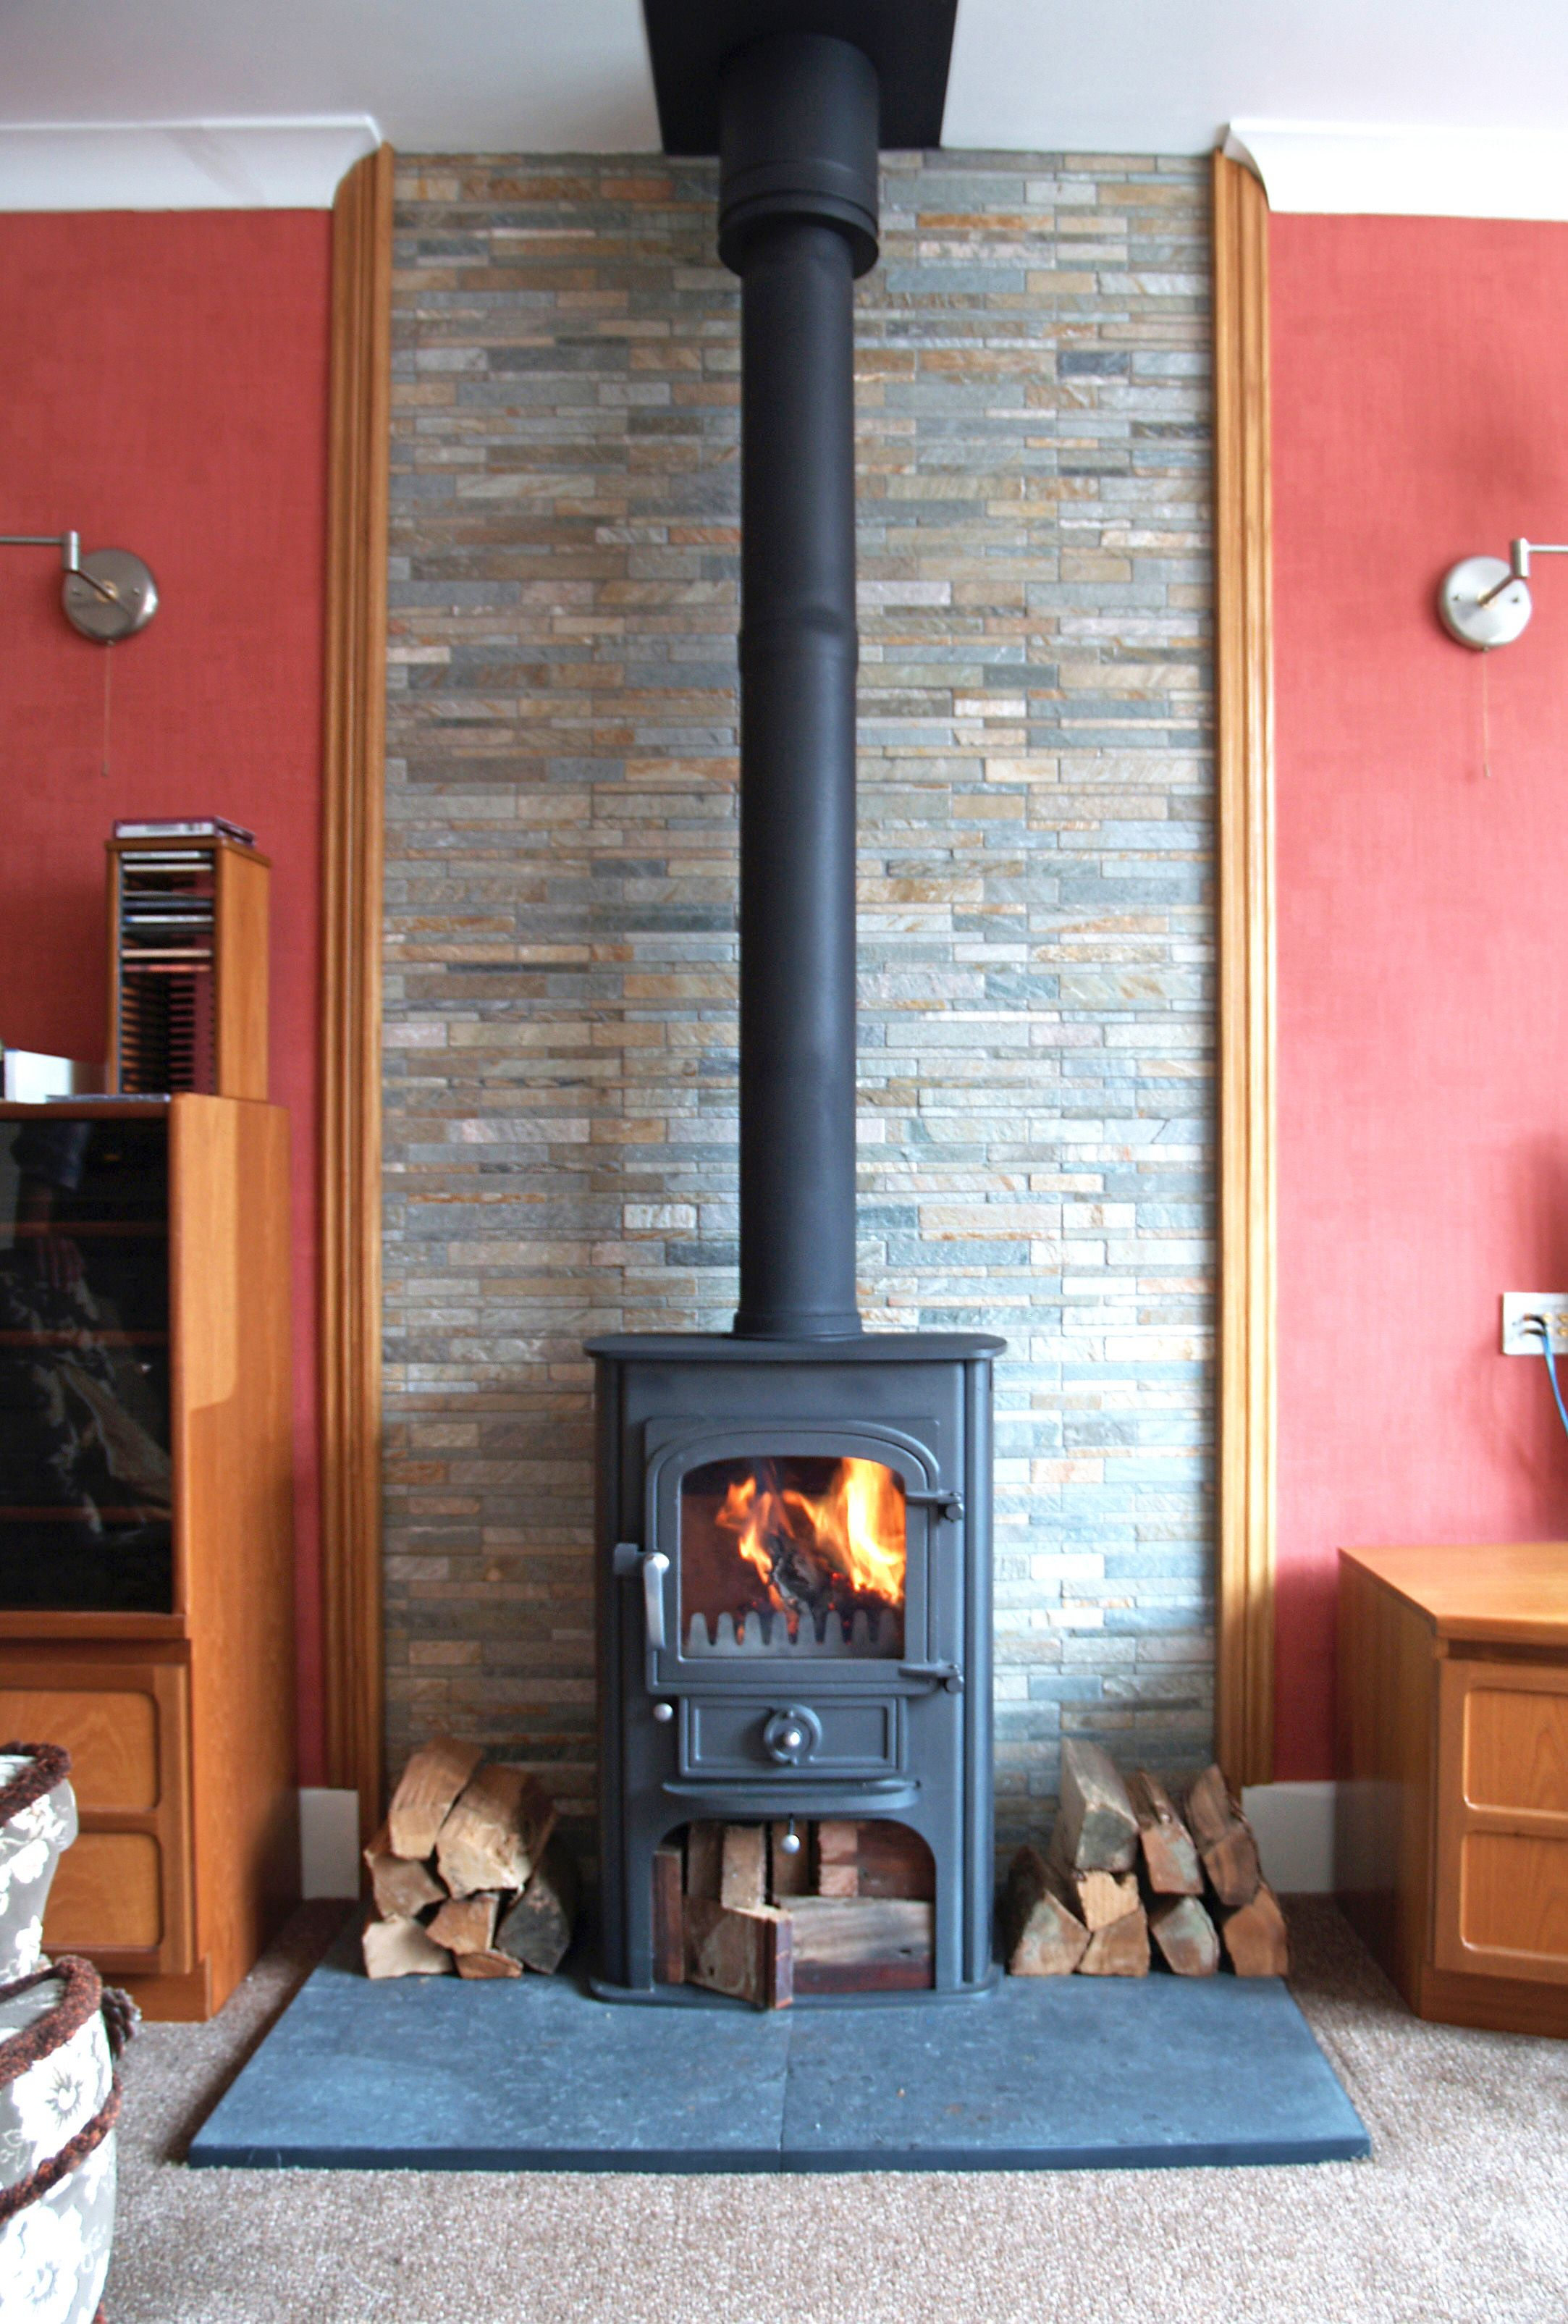 clearview solution 400 multi fuel stove with welsh slate hearth and